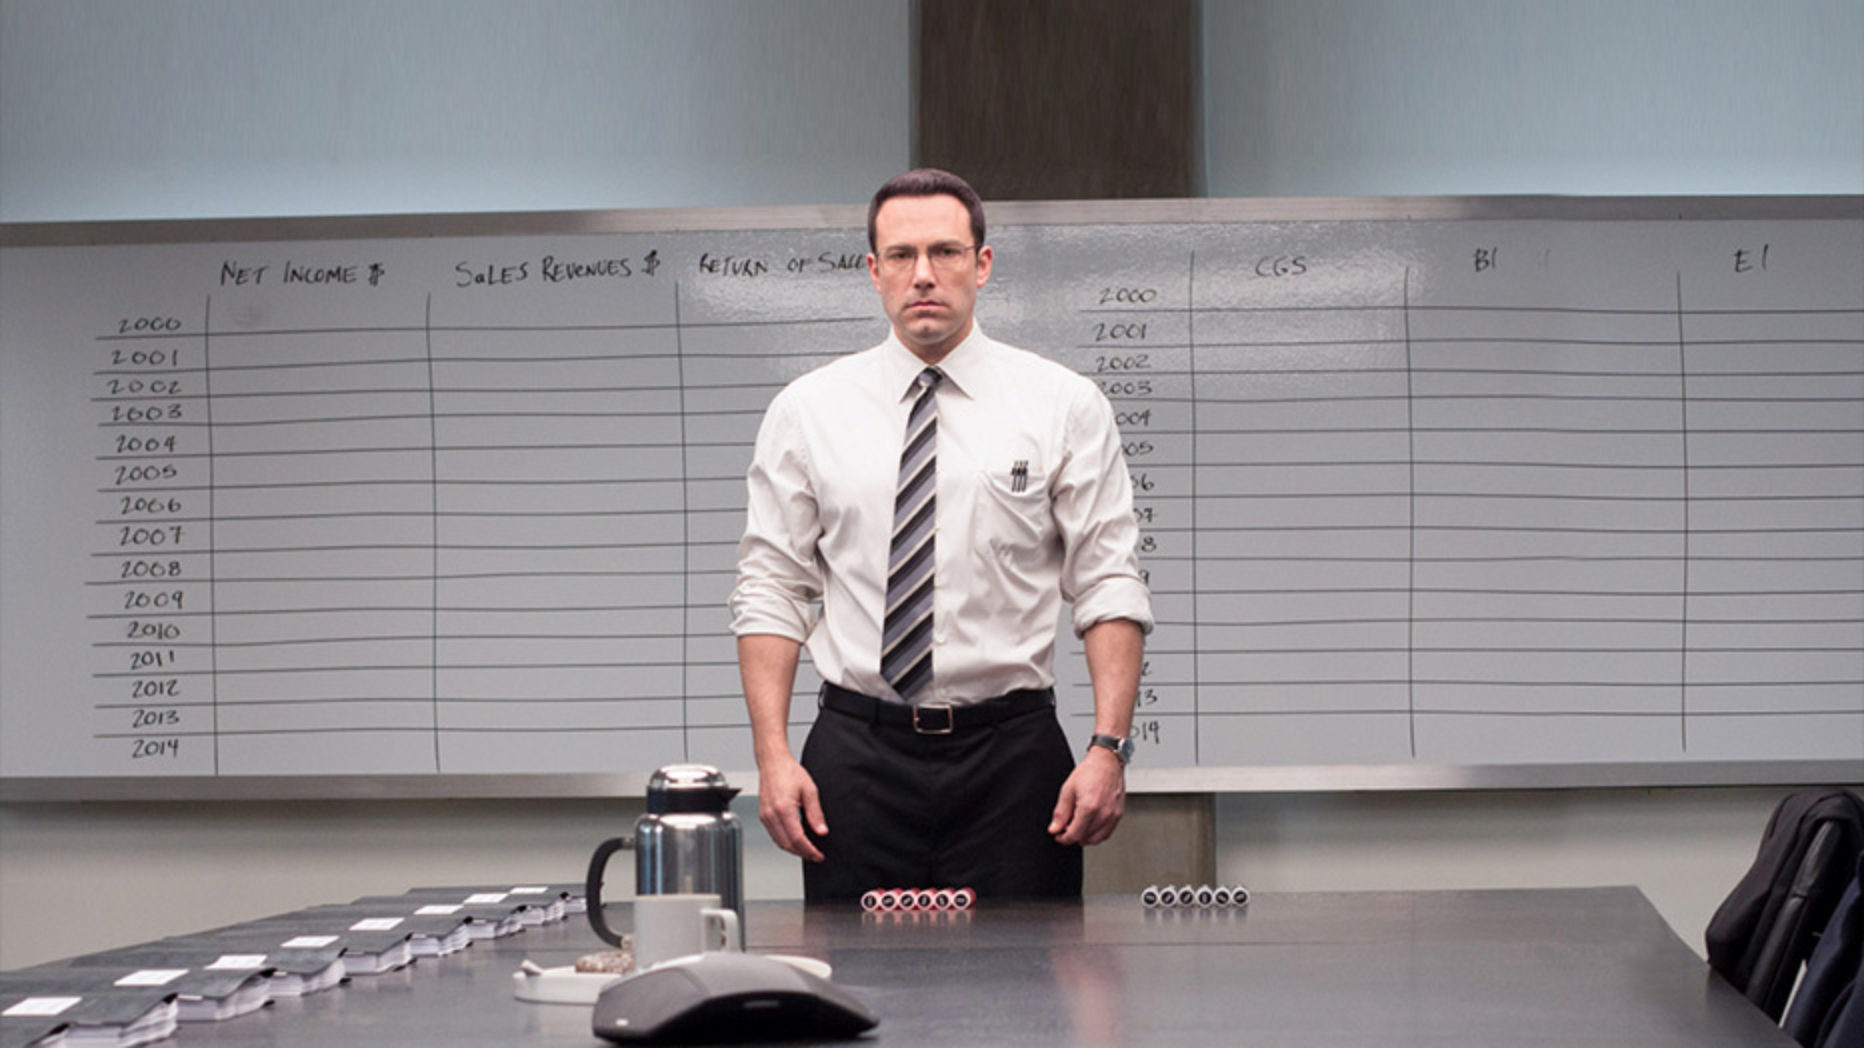 The Accountant   Film Review